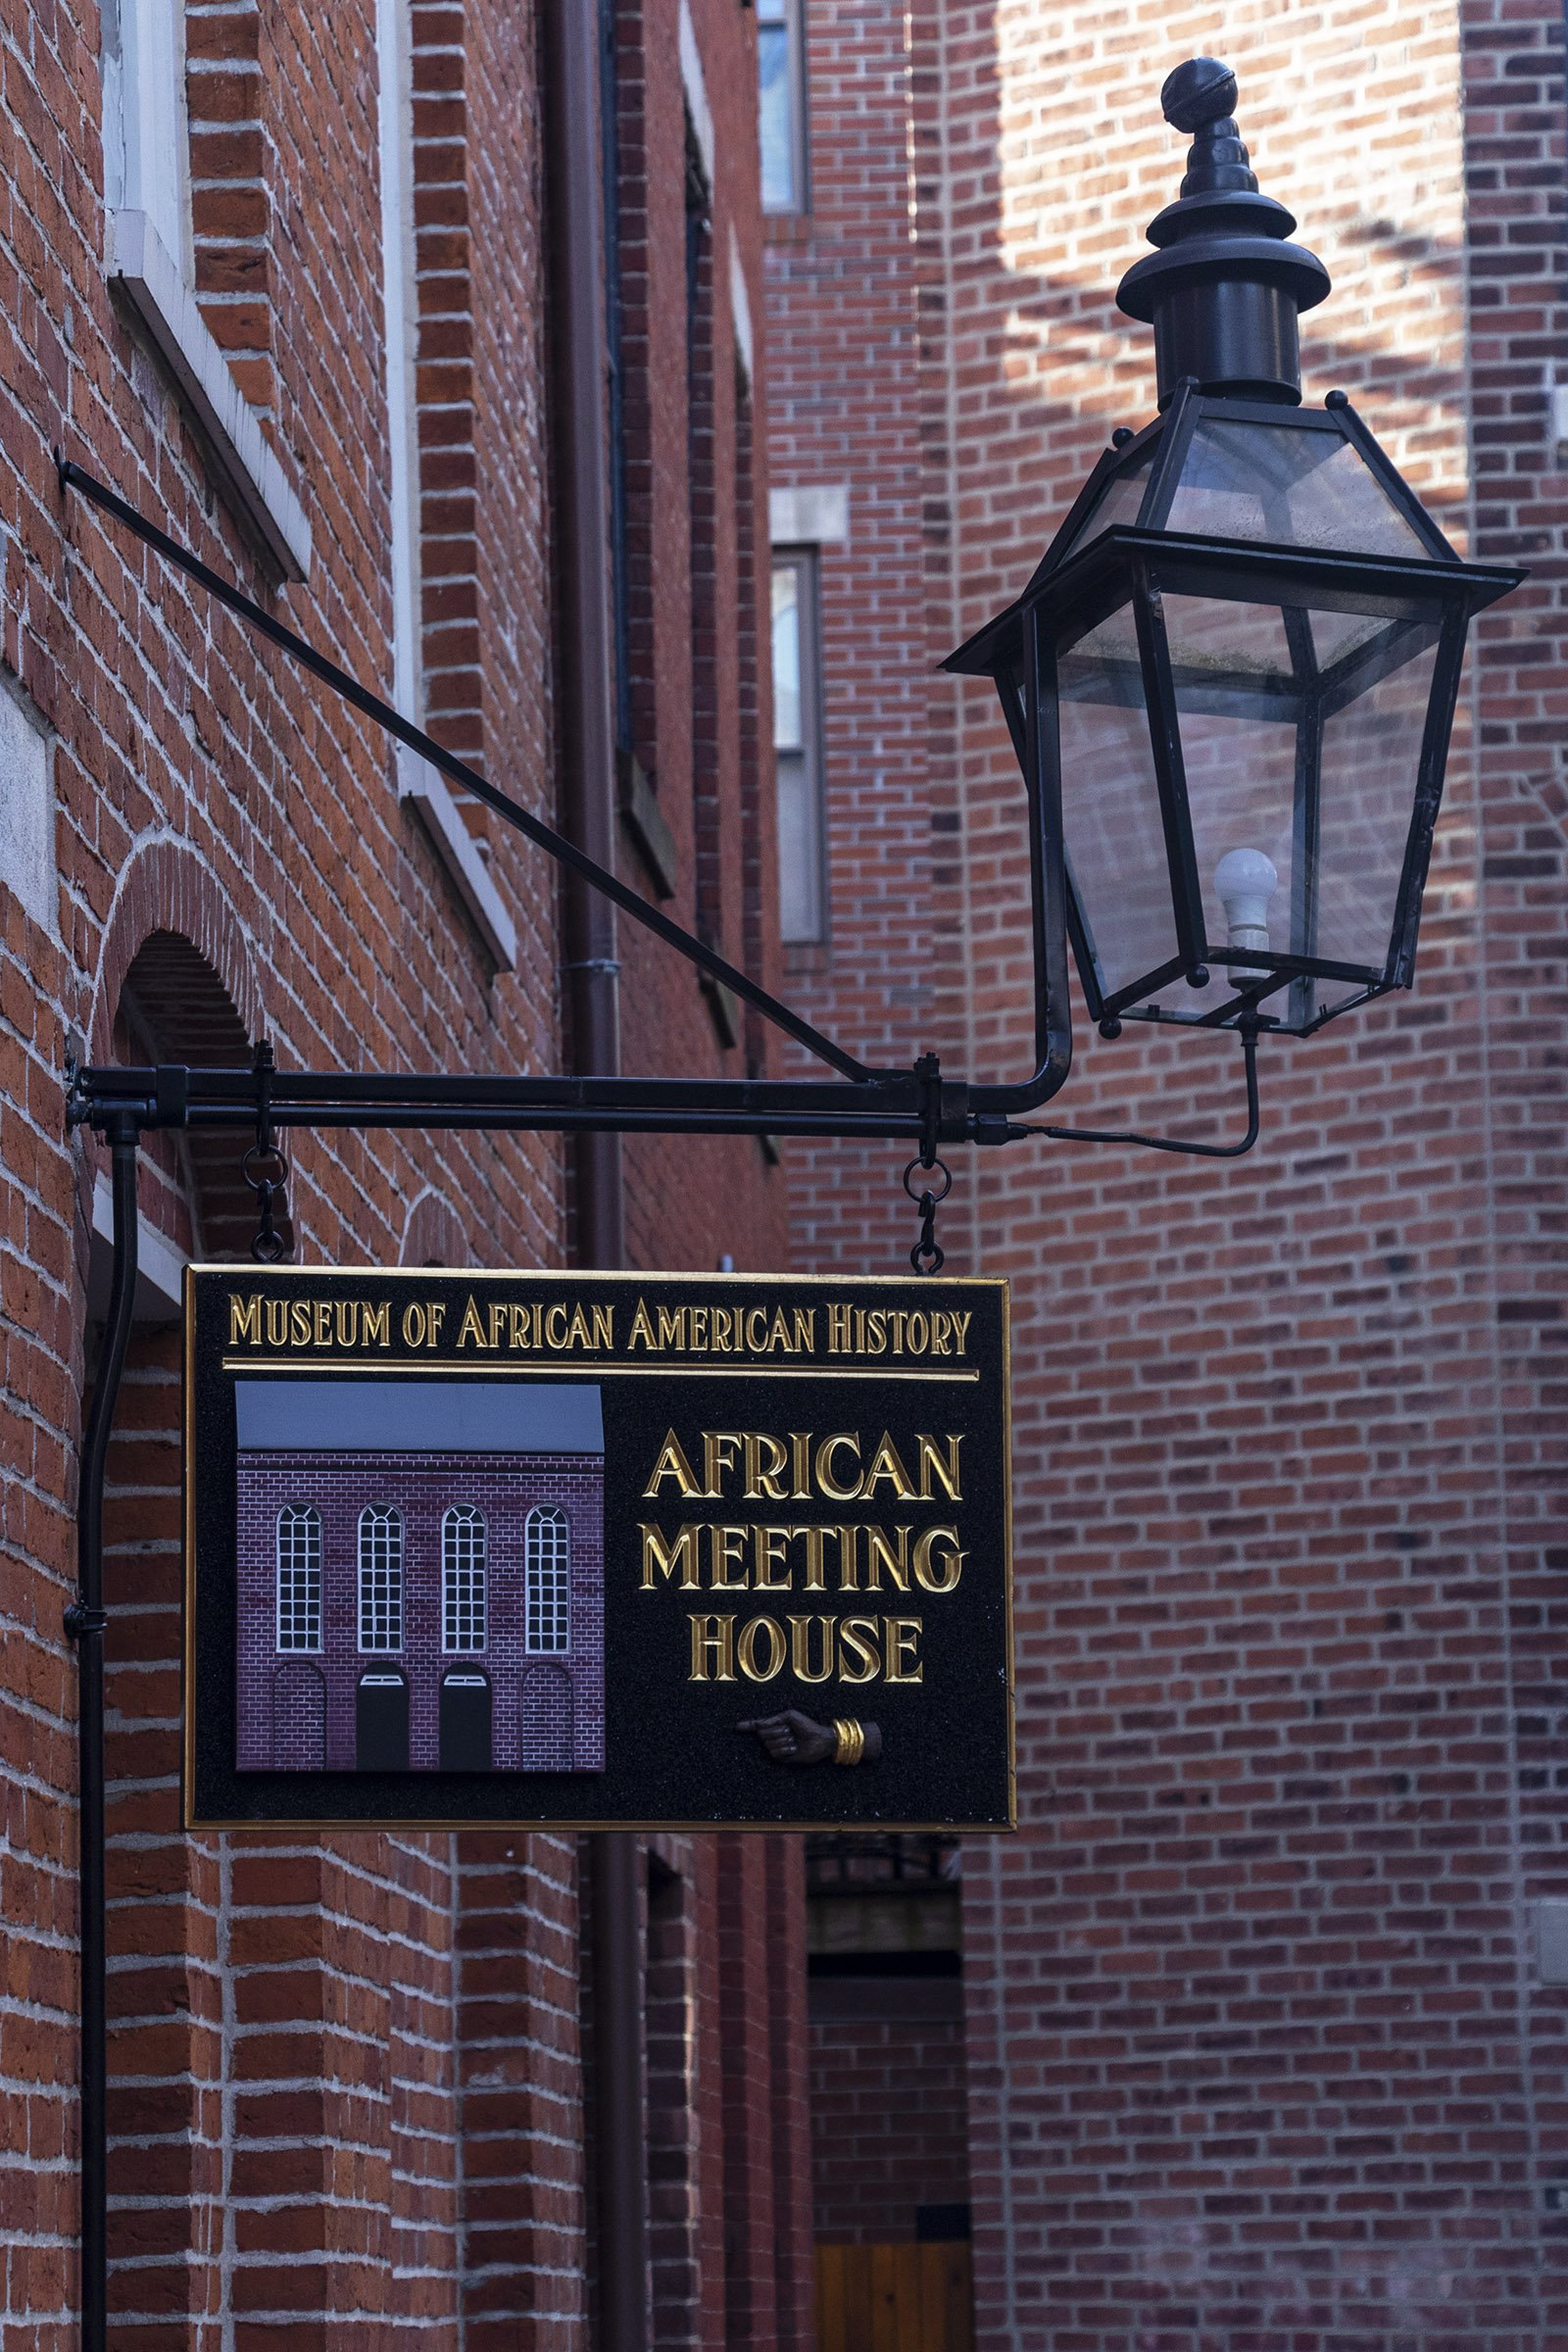 African Meeting House, Boston - Museum of African American History sign